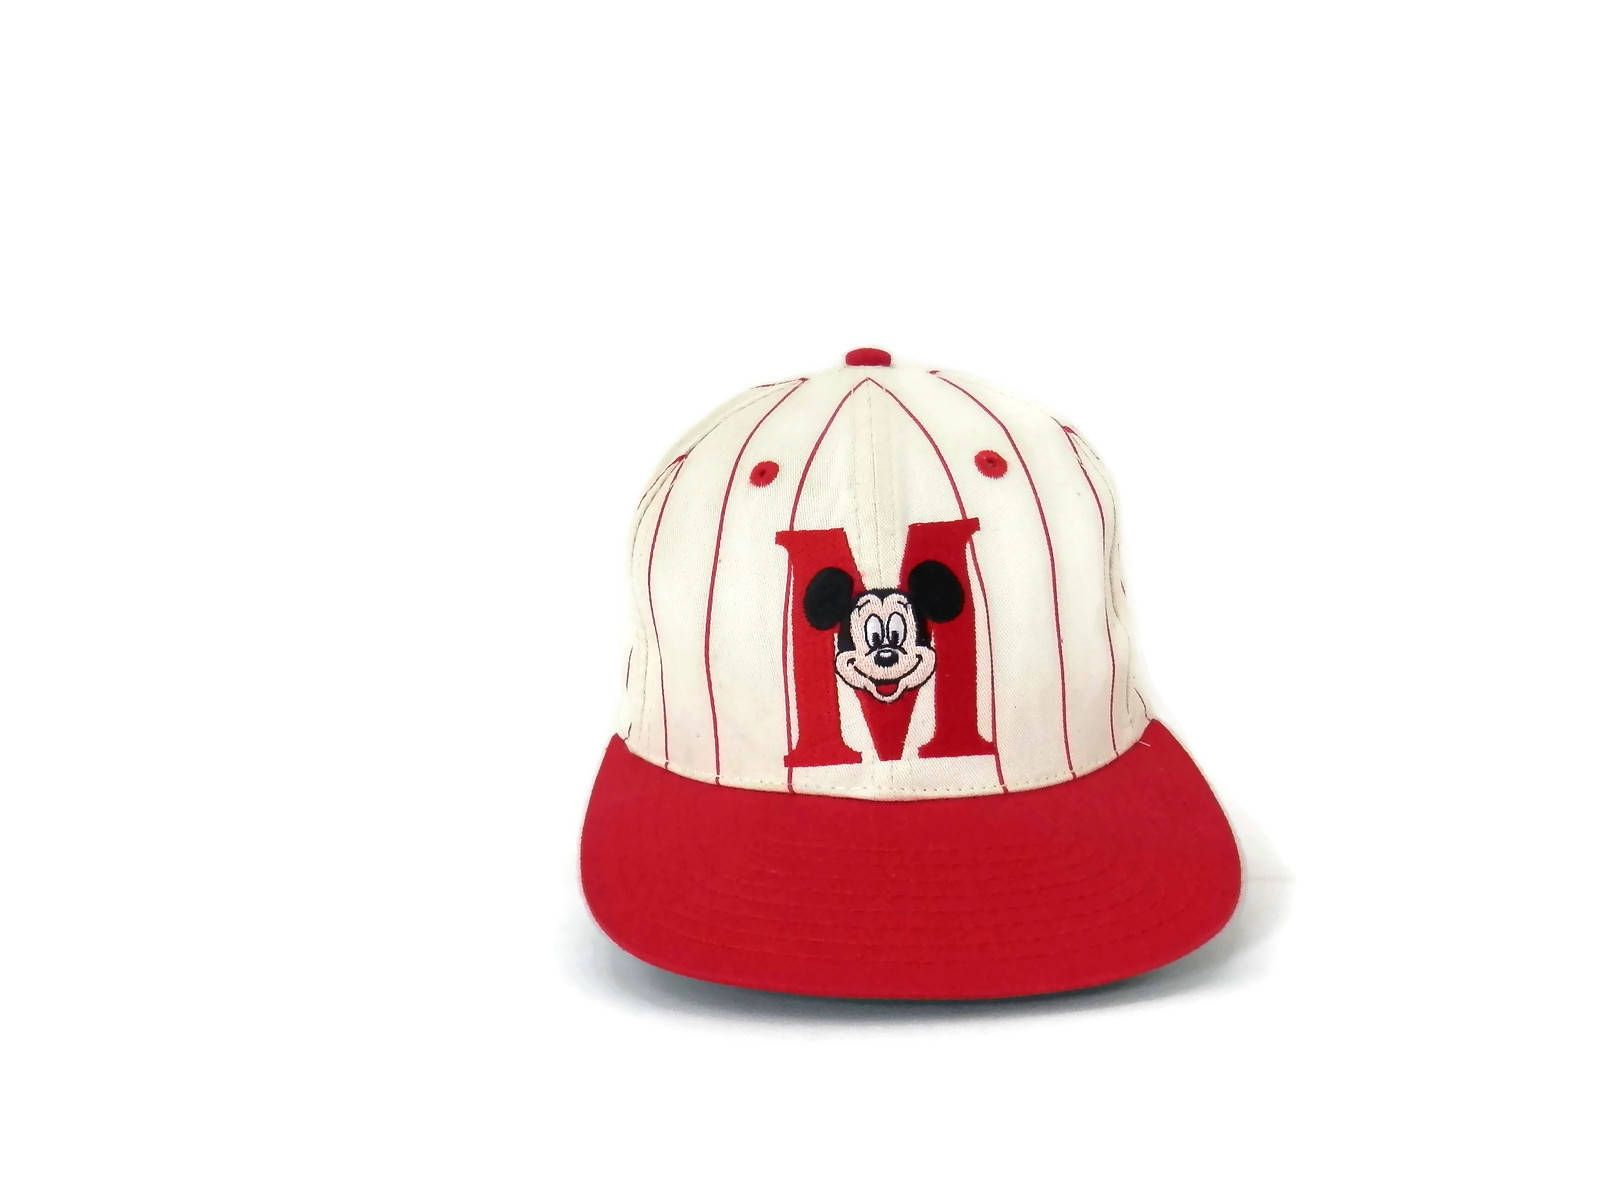 vintage mickey mouse baseball cap red striped with embroidered snap back hat by goofys hat company